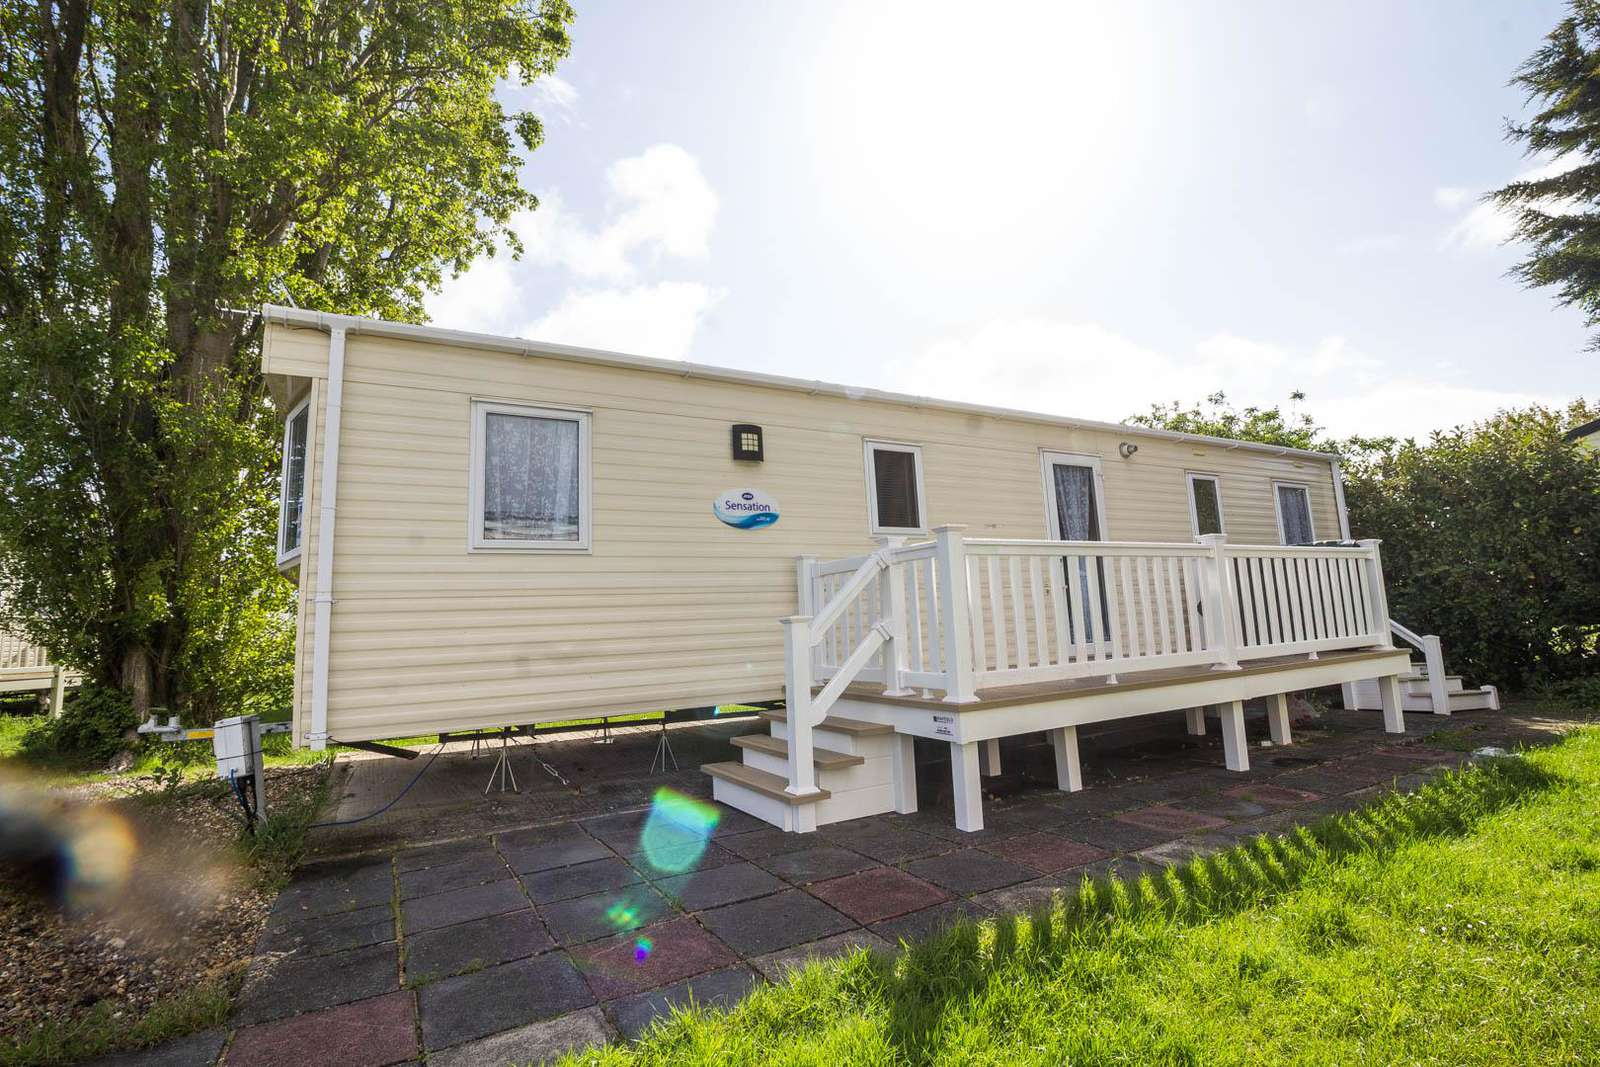 27049R – Seawick, 3 bed, 8 berth caravan with decking and unlimited WiFi. Ruby rated. - property